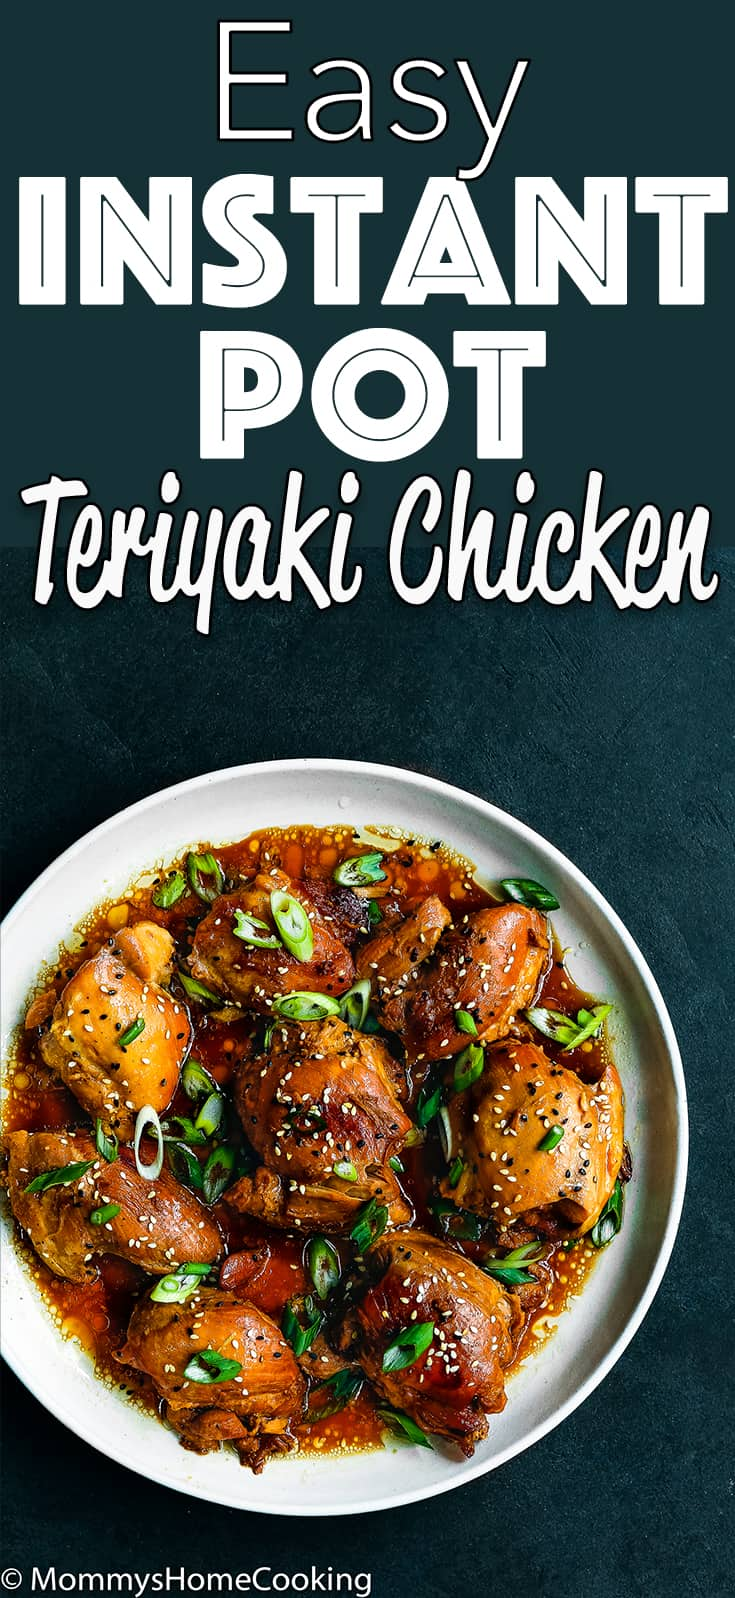 This Easy Instant Pot Teriyaki Chicken recipe is perfect for your weeknight's dinner repertoire! Easy to make with just a few ingredients, this flavorful chicken will quickly become a family favorite. #recipe #instantpot #pressurecooker #chicken #dinner #teriyaki